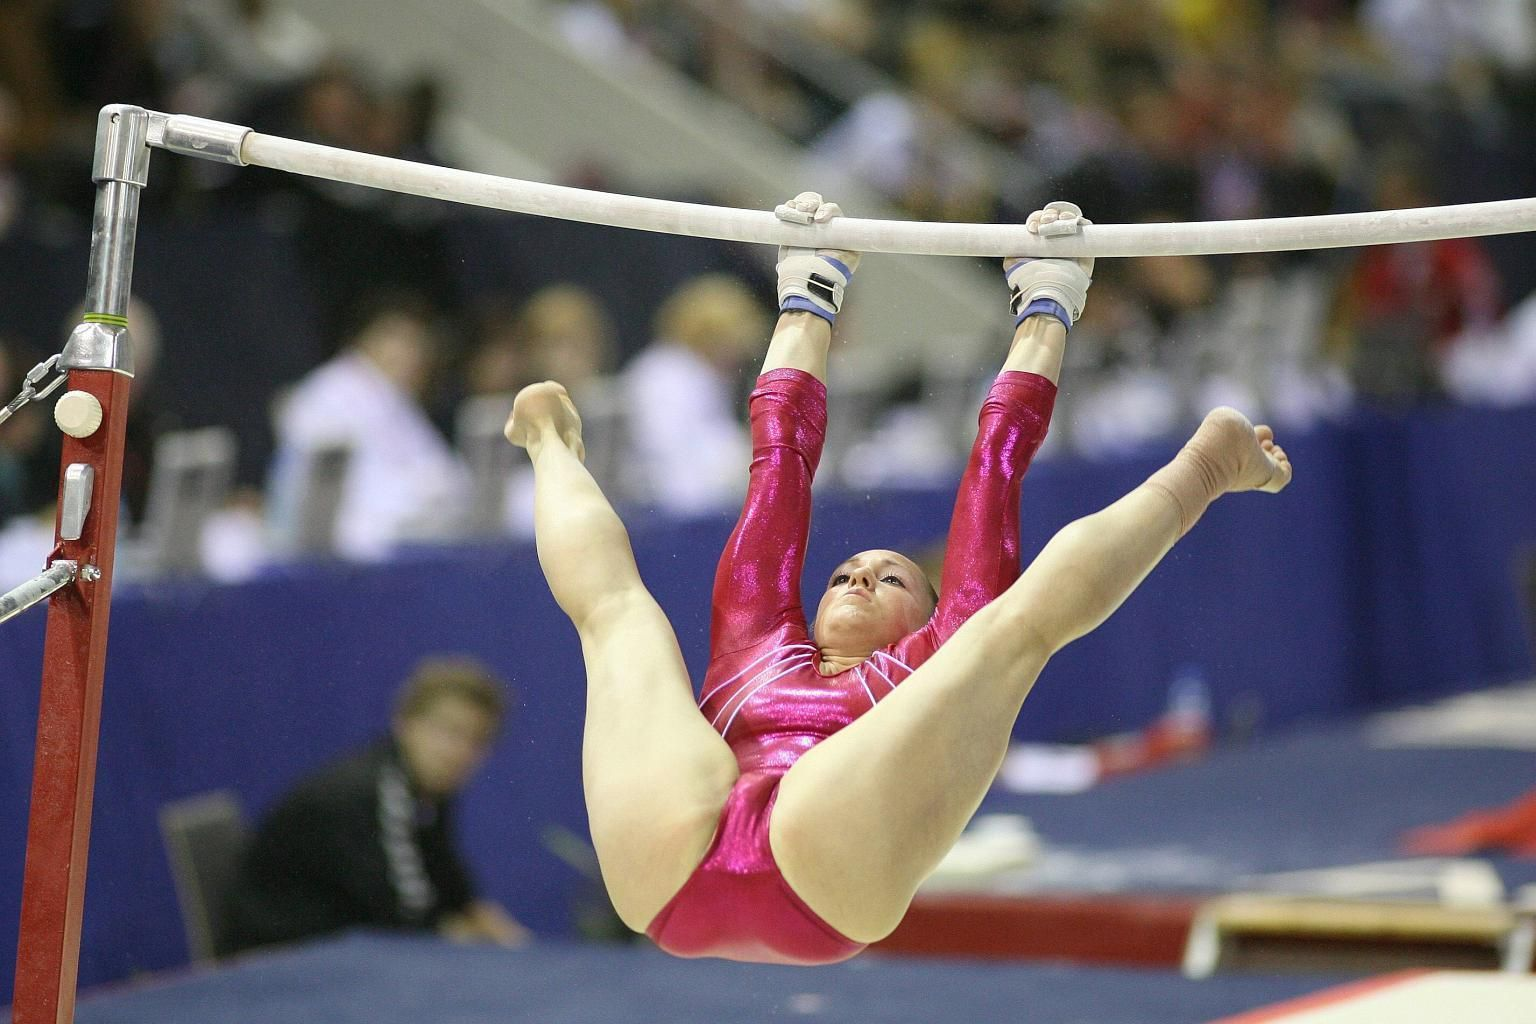 Female Gymnast Photos, Royalty